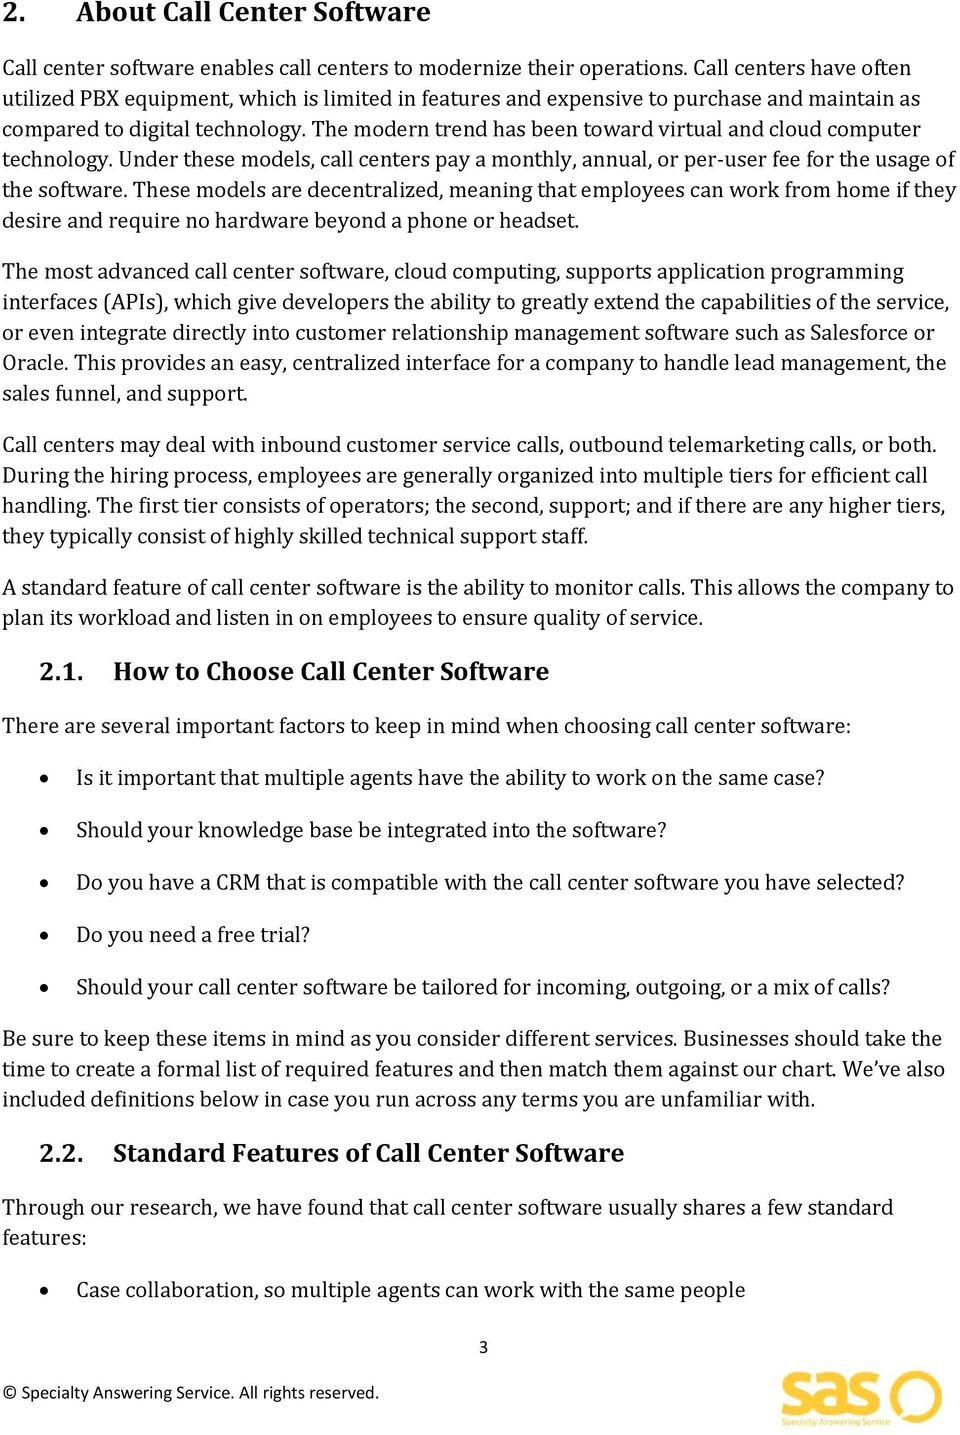 The modern trend has been toward virtual and cloud computer technology. Under these models, call centers pay a monthly, annual, or per user fee for the usage of the software.